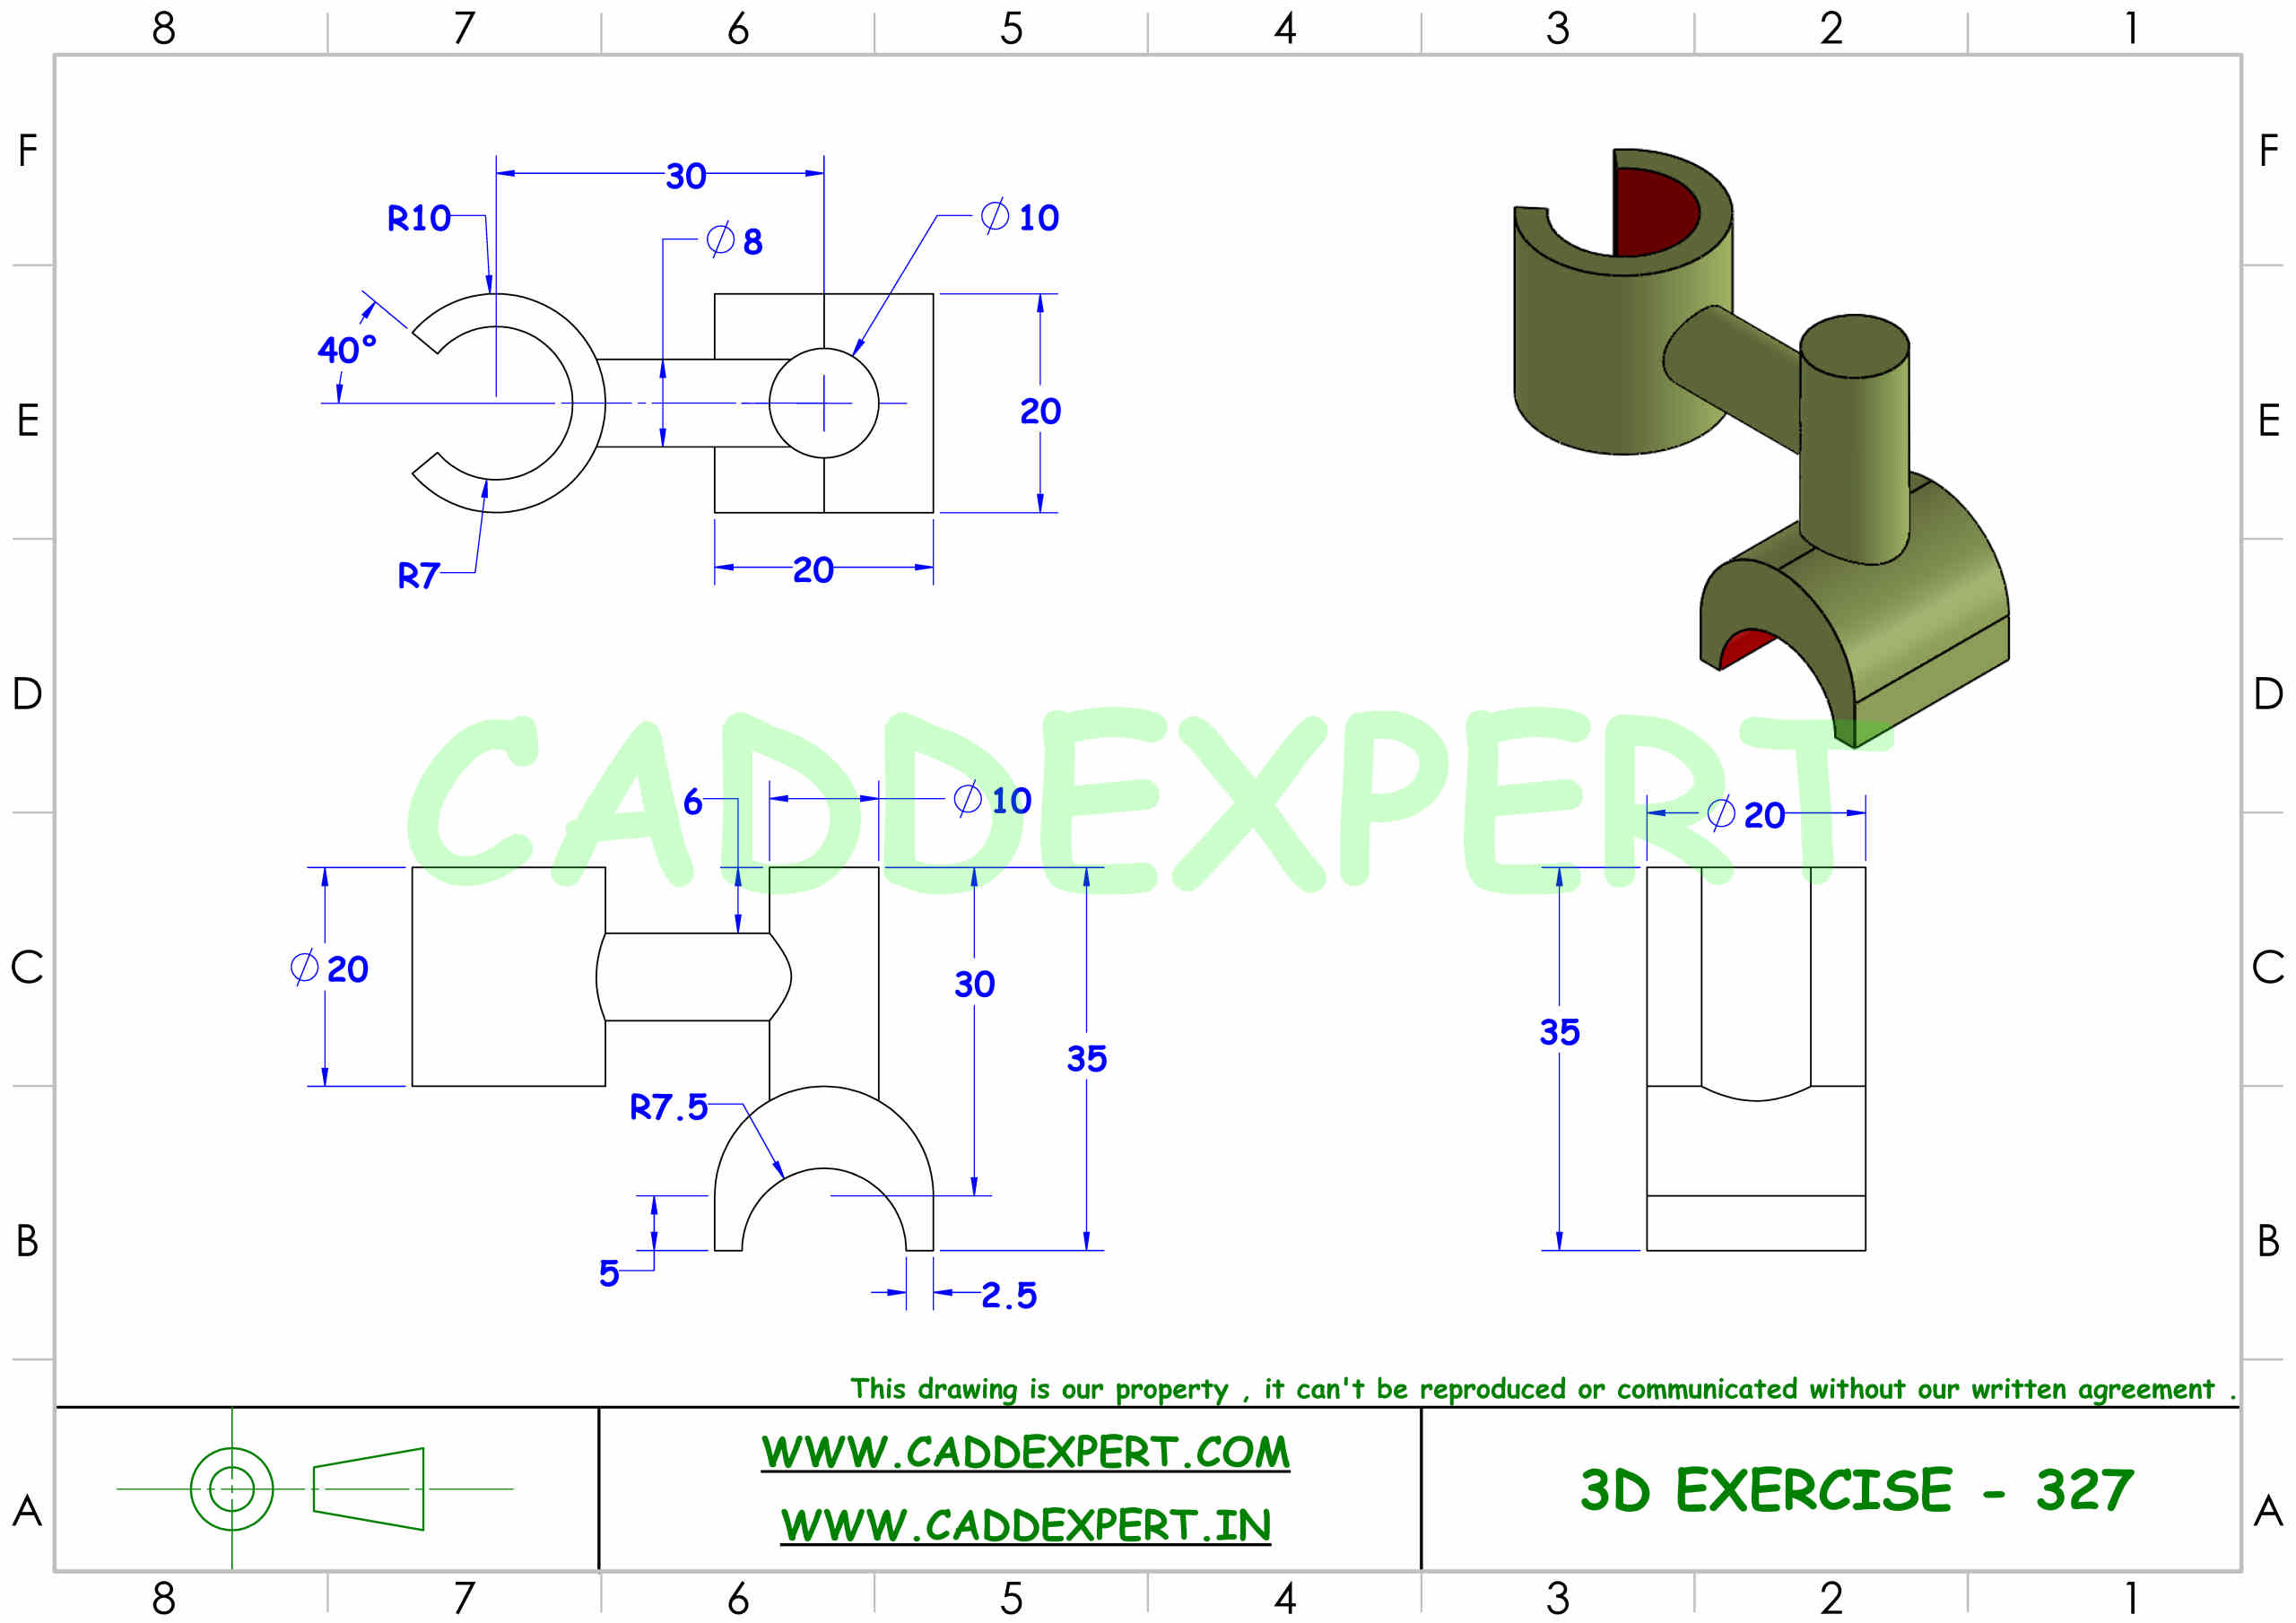 SOLIDWORKS 3D DRAWING WITH DIMENSIONS - 7